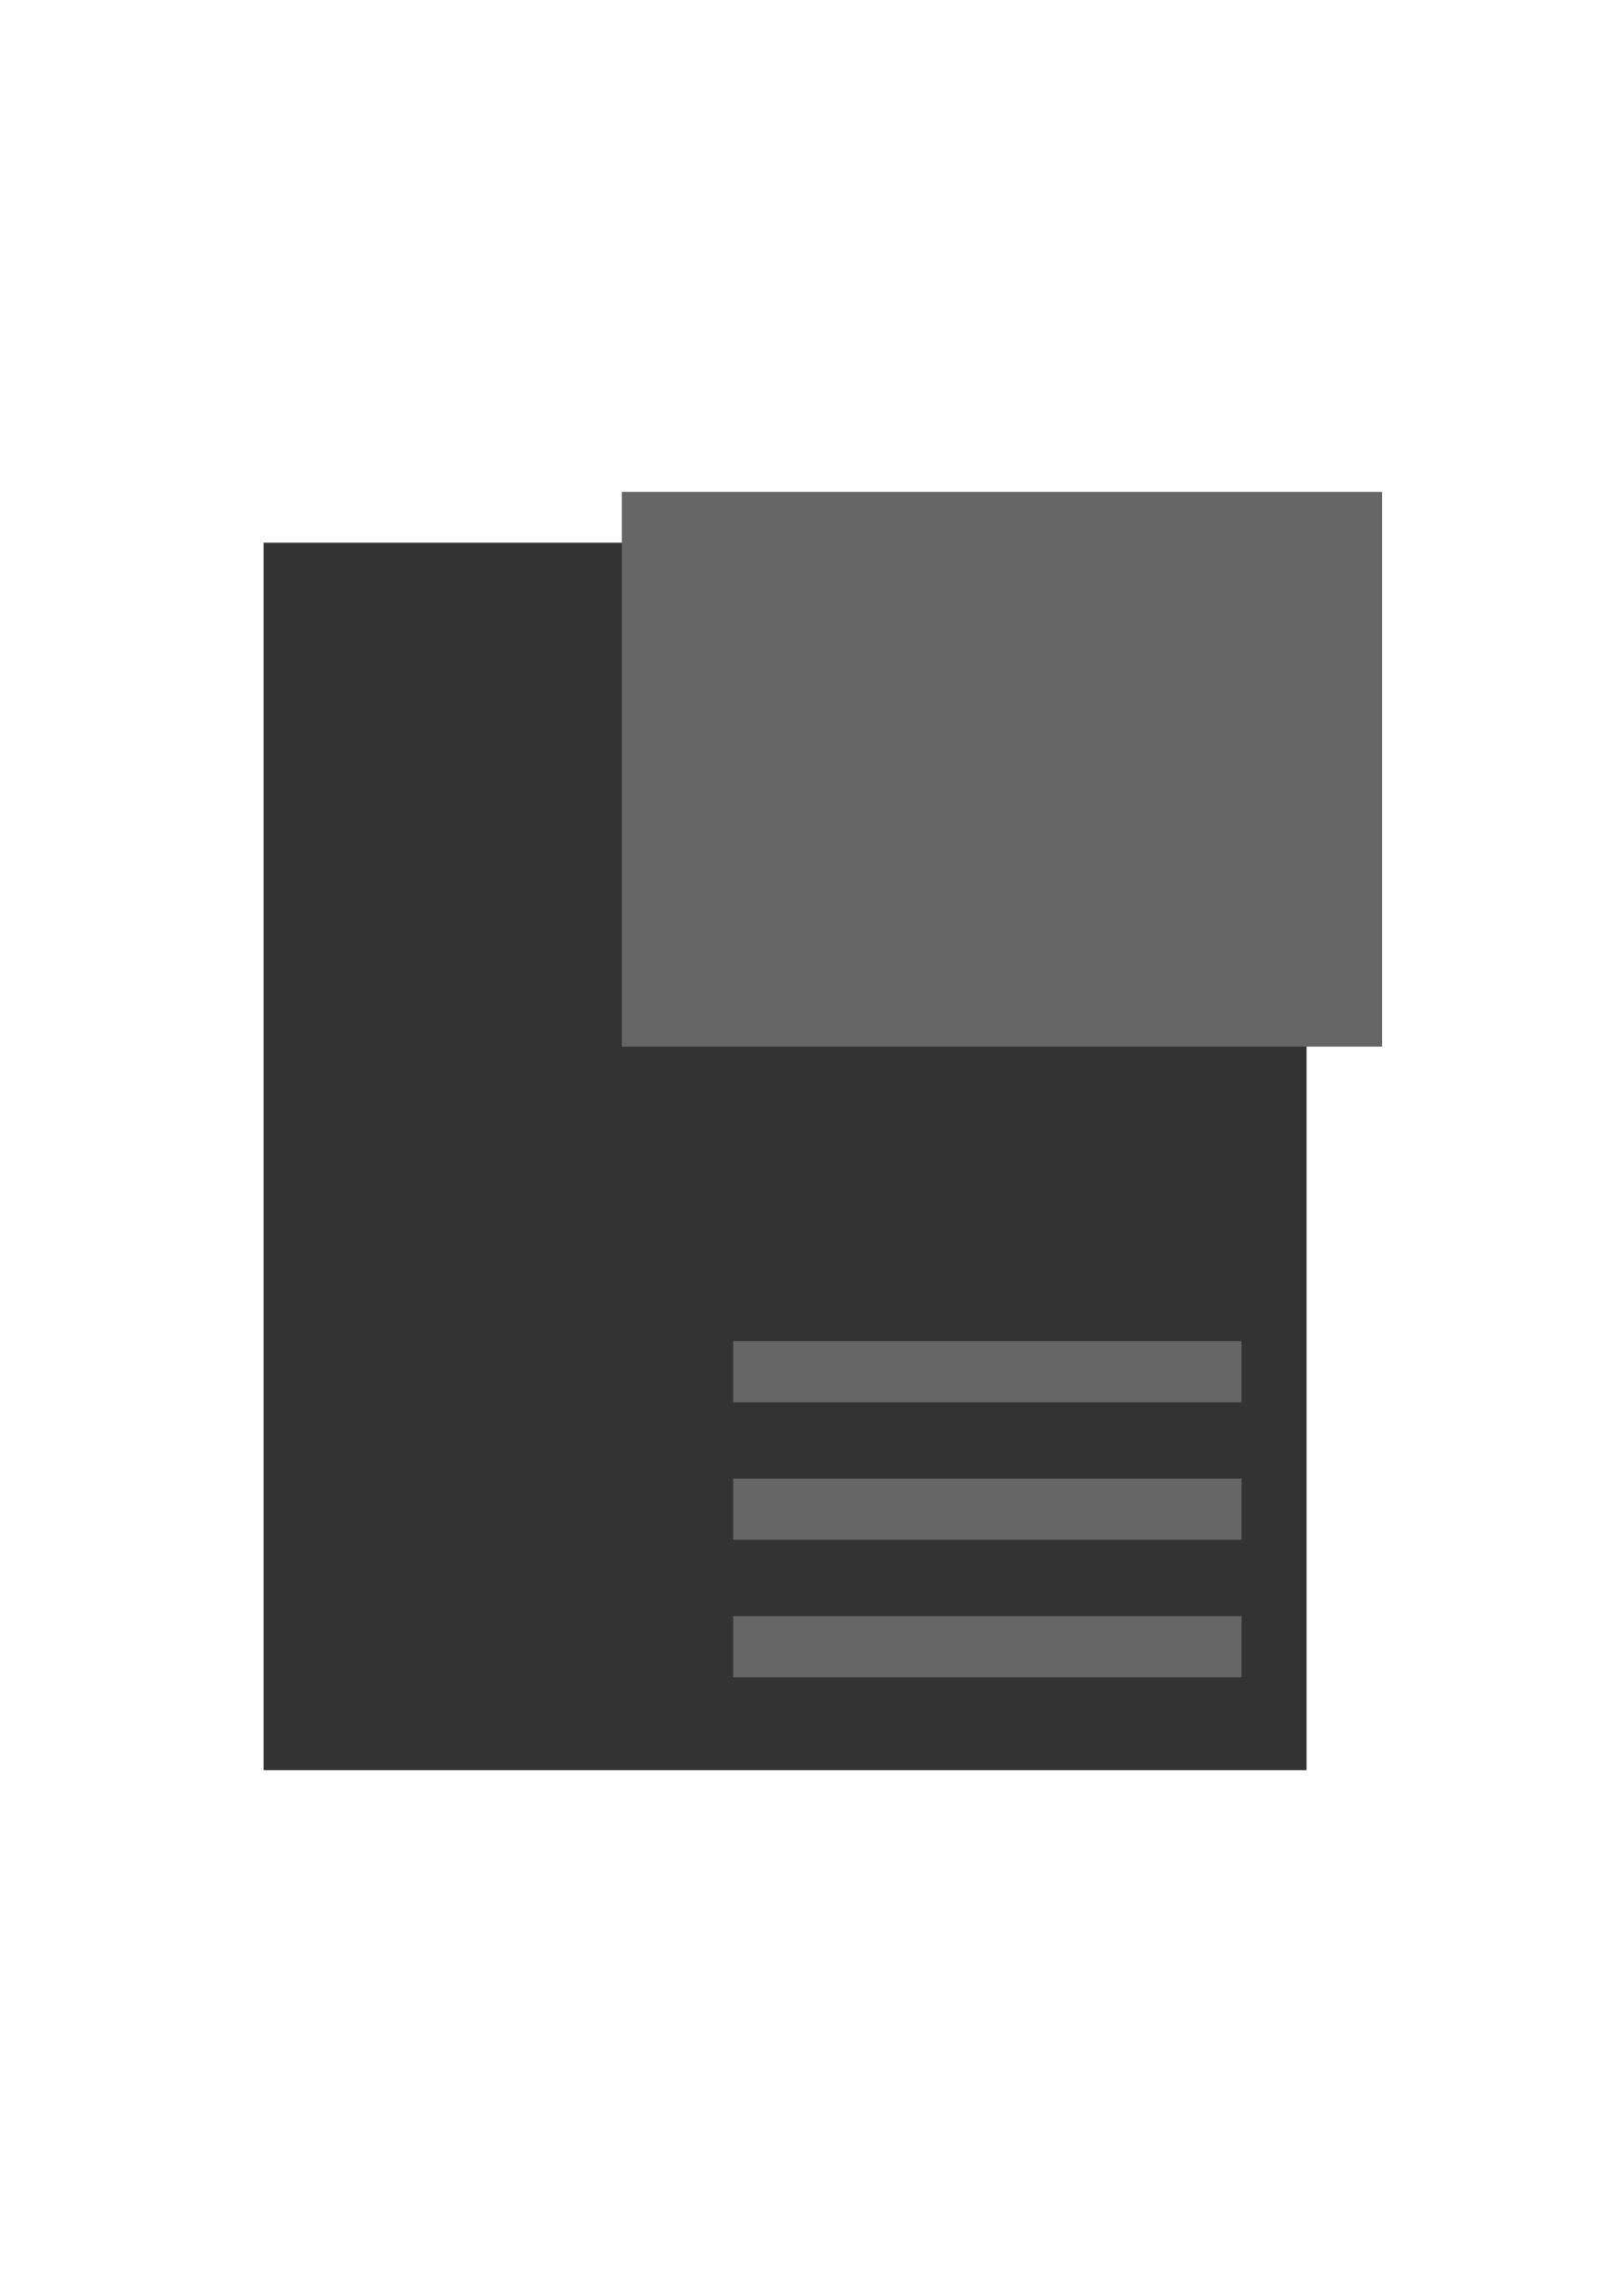 Onix Document Icon by hackdorte